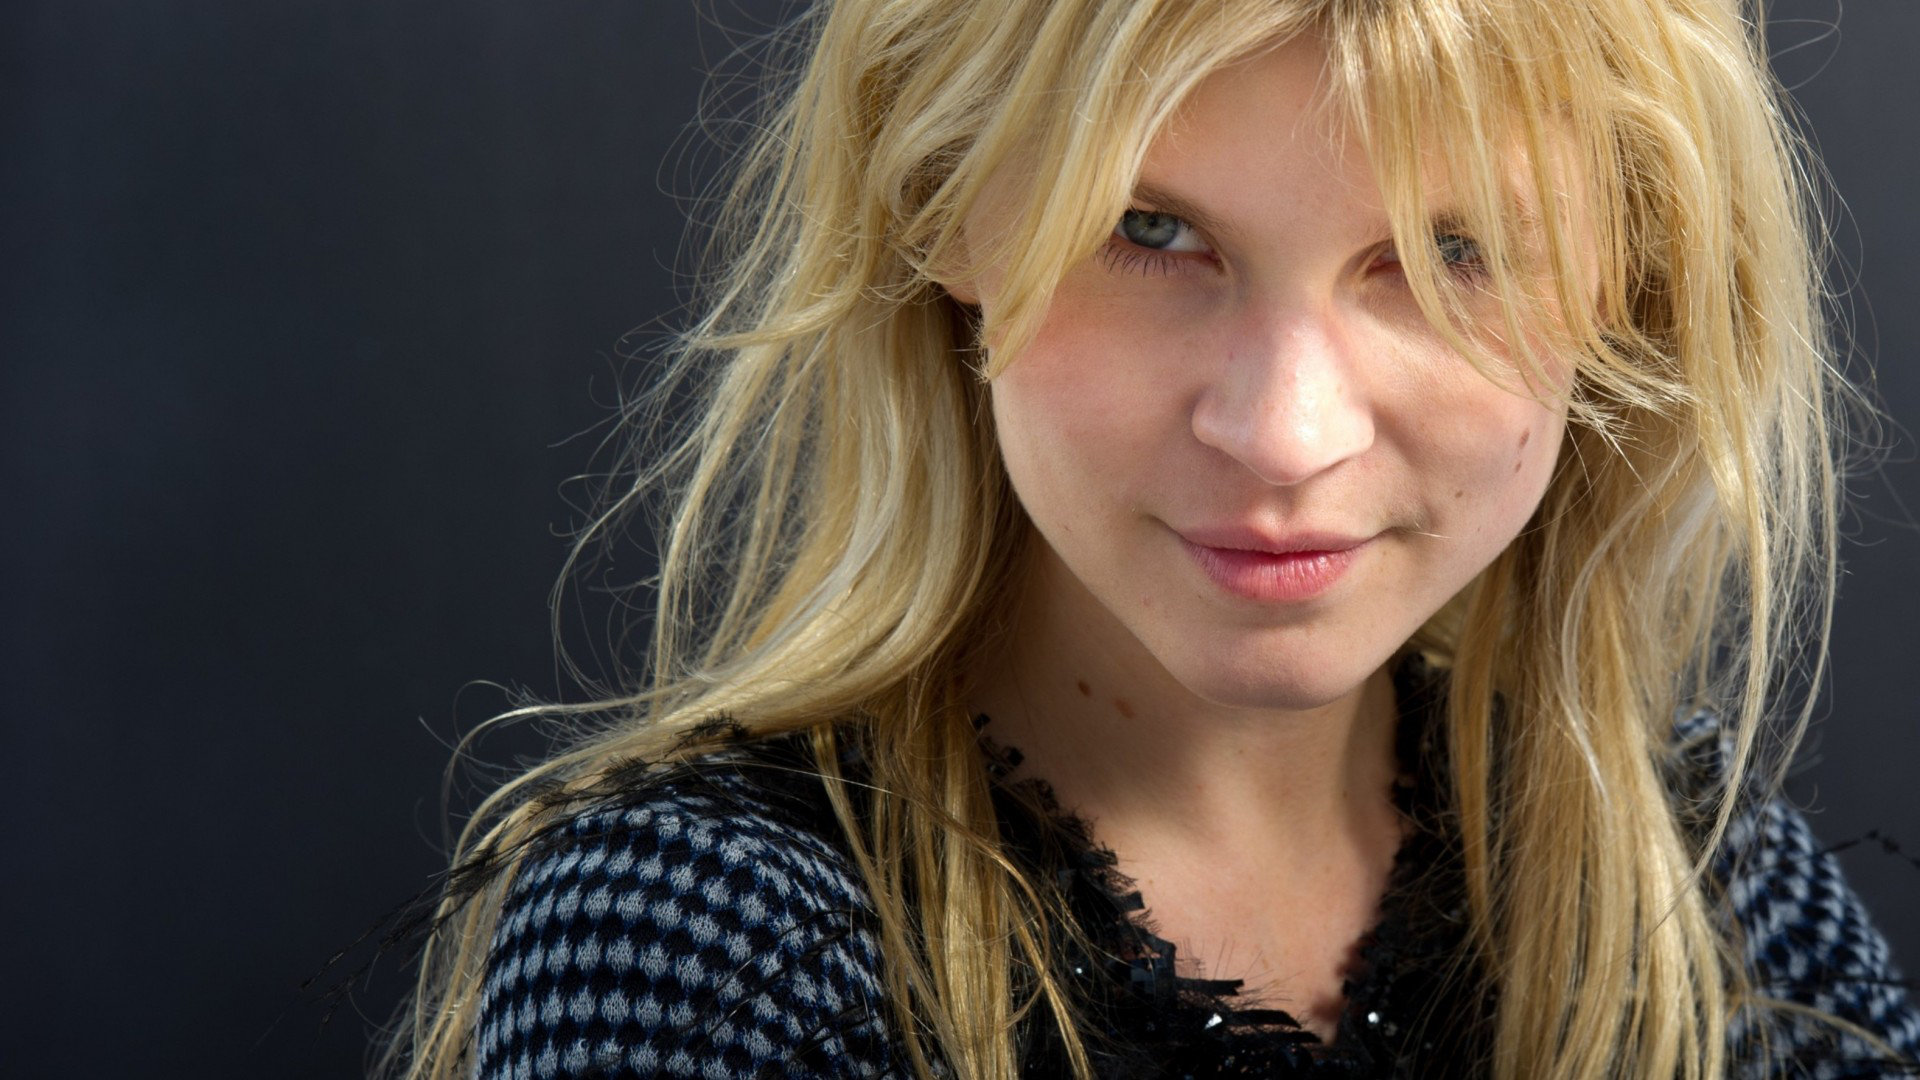 High resolution Clemence Poesy hd 1920x1080 background ID:9919 for computer